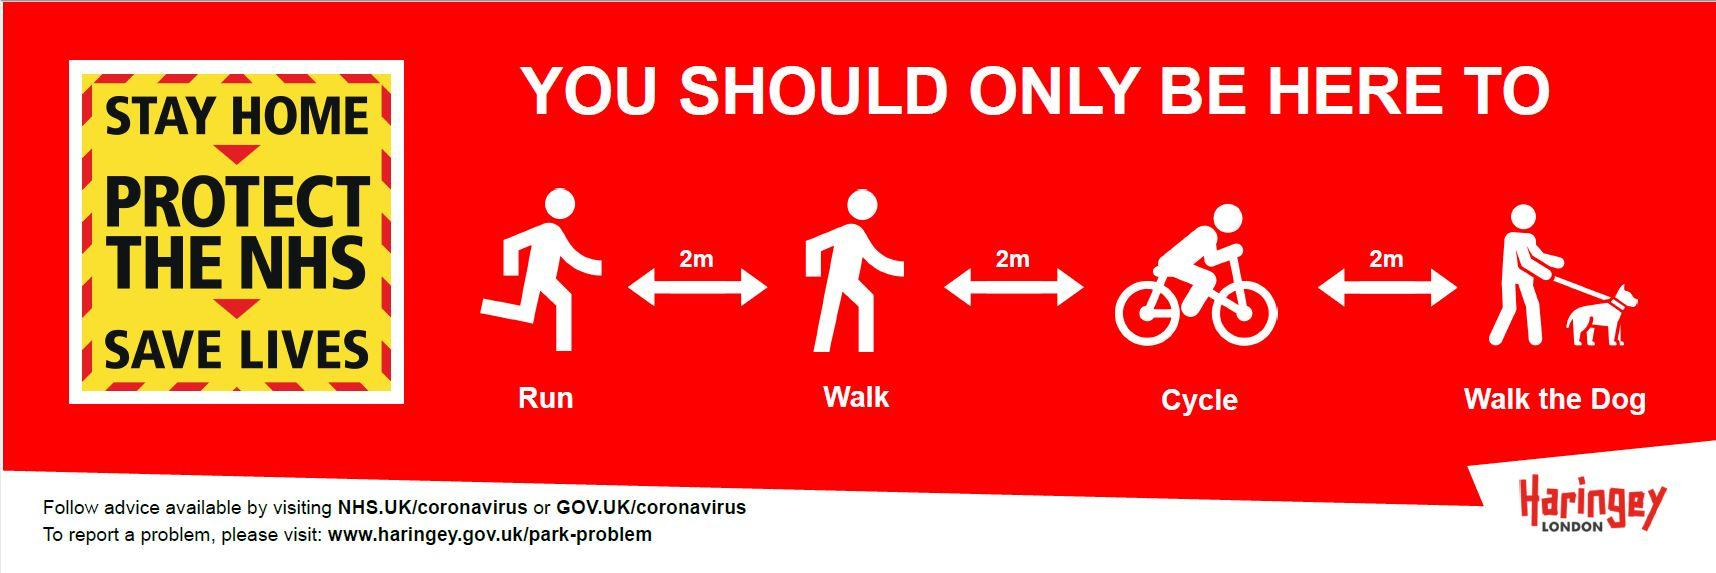 Only use parks to walk, run, cycle, dog walk